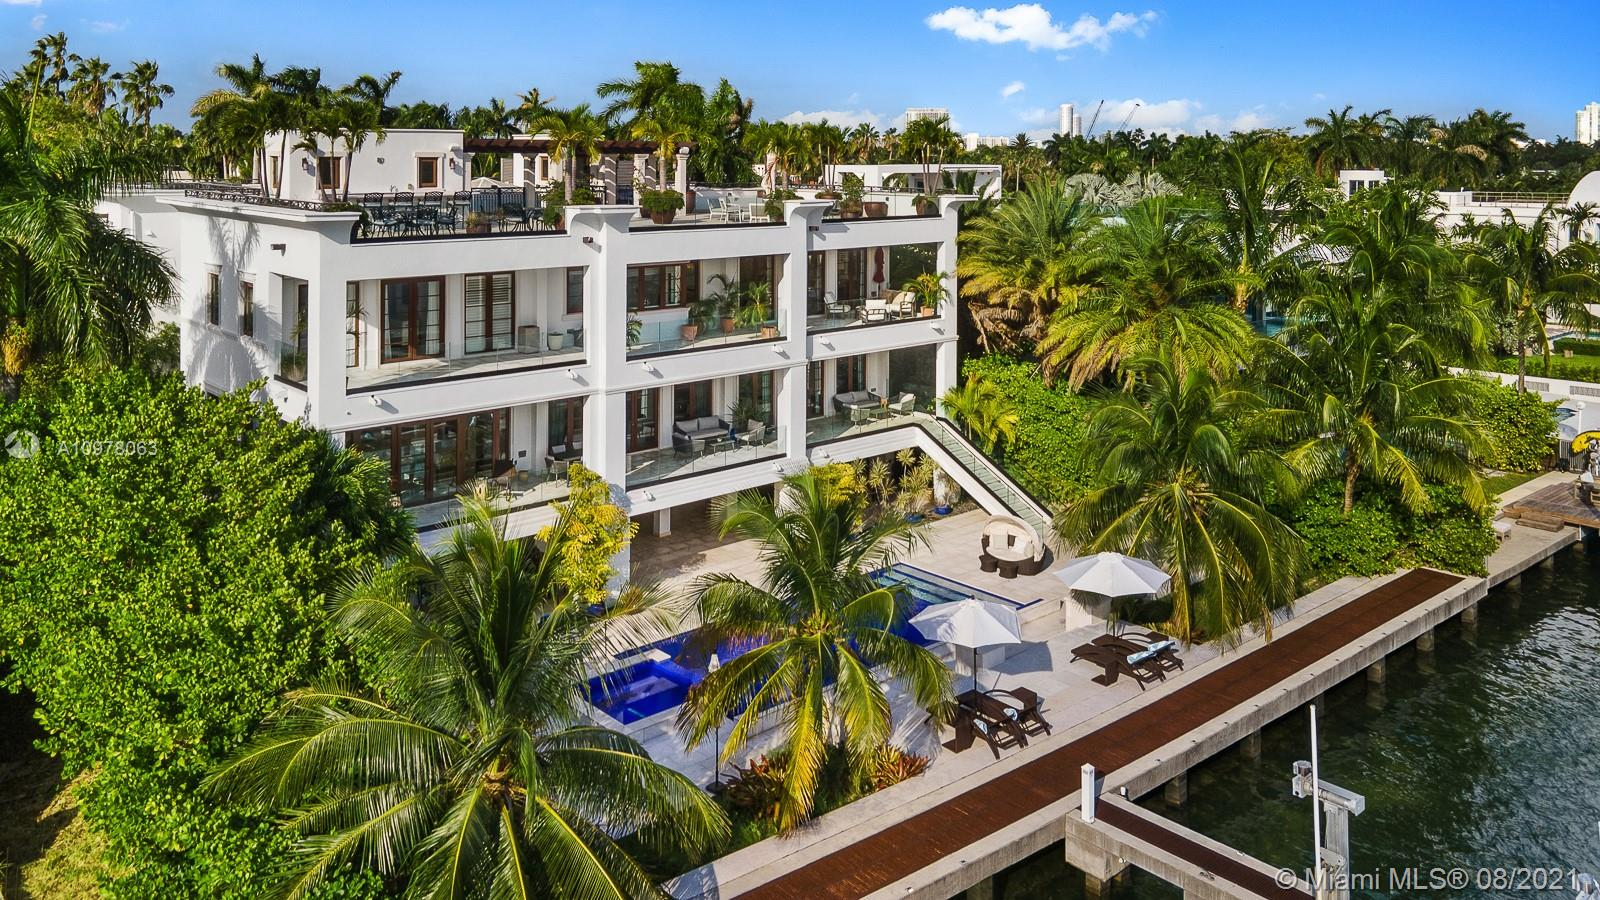 Enjoy Miami's best views from this distinguished 3-story, waterfront estate on exclusive, guard gated Palm Island. It's 5000+ SF rooftop w/ unique 360-degree visibility boasts unobstructed views of the spectacular city skyline, passing cruise ships & the coveted city sunset views visible not just from its rooftop, but also from its master suite, kitchen, pool deck & many other entertainment areas. Conceived for both indoor & outdoor enjoyment w/ 9 bedrooms/10.5 baths, indoor movie theater, gym, game room, large ground floor entertainment area, smart house systems, & elevator for easy access to all floors. This gated home offers a 4 garages plus space for 6 more cars in the driveway. The home's private dock can accommodate boats up to 100ft and has a center console lift & a floating dock.